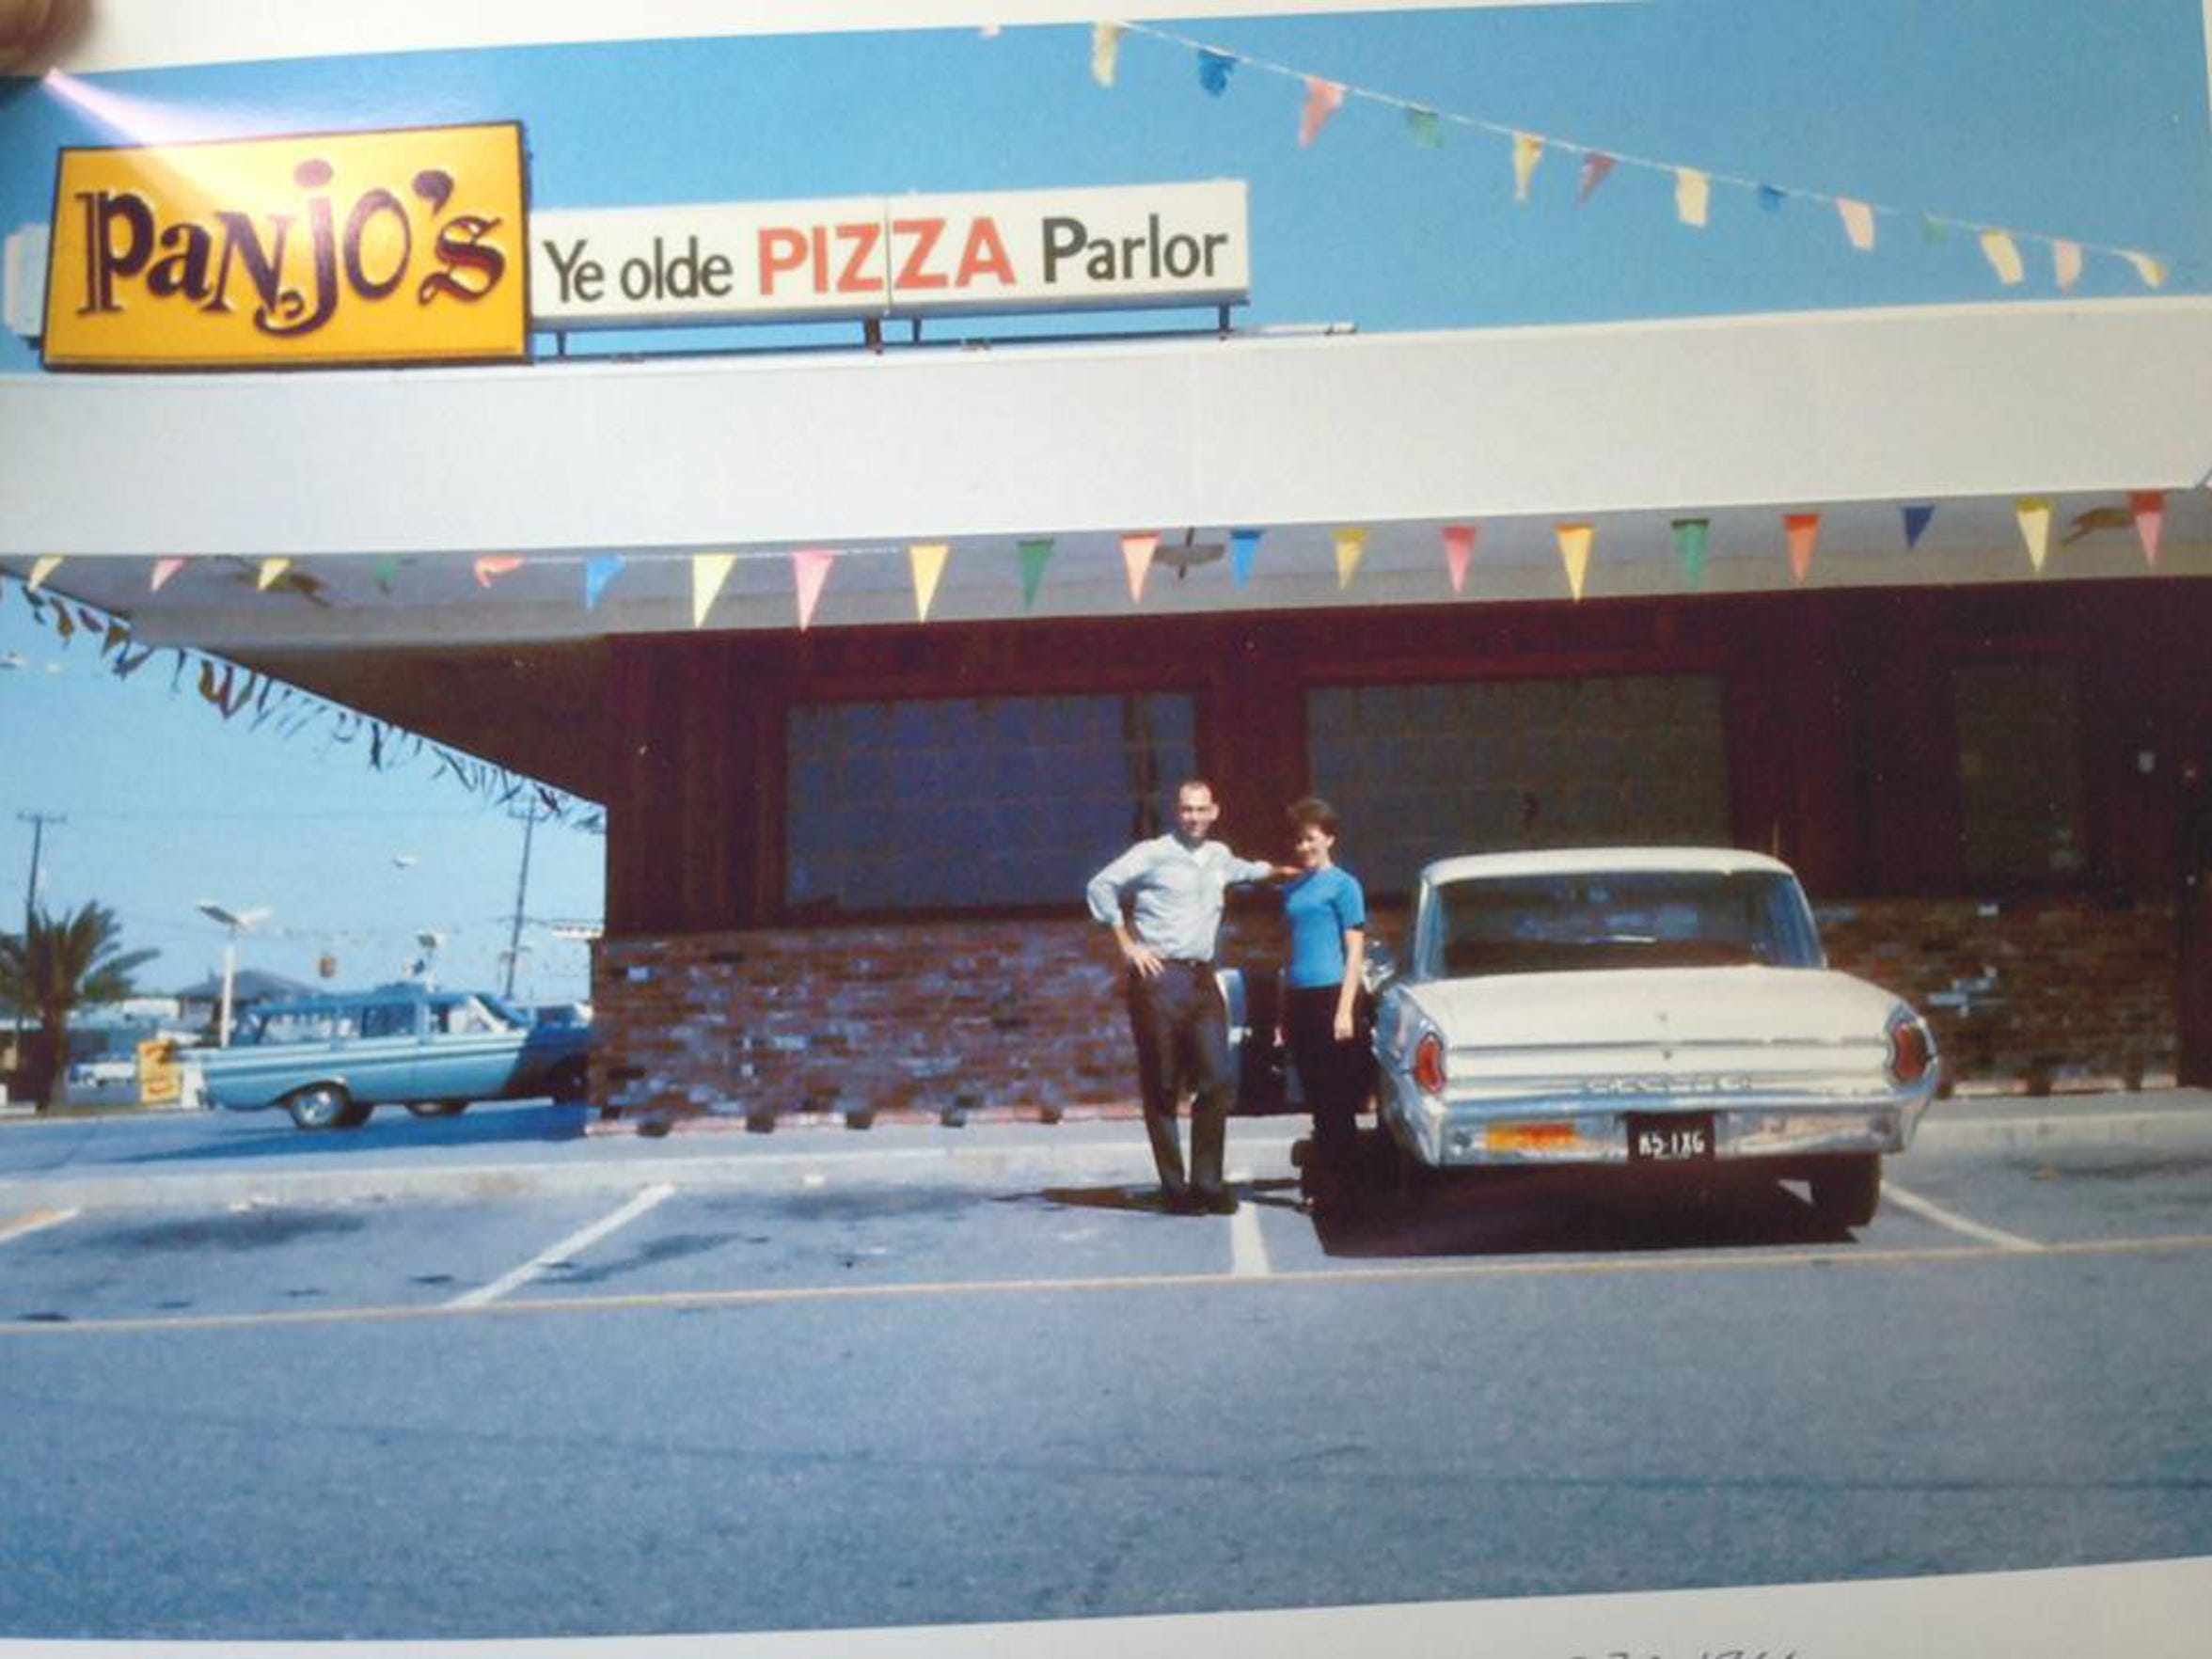 Panjo's Ye Olde Pizza Parlor, now just known as Panjo's